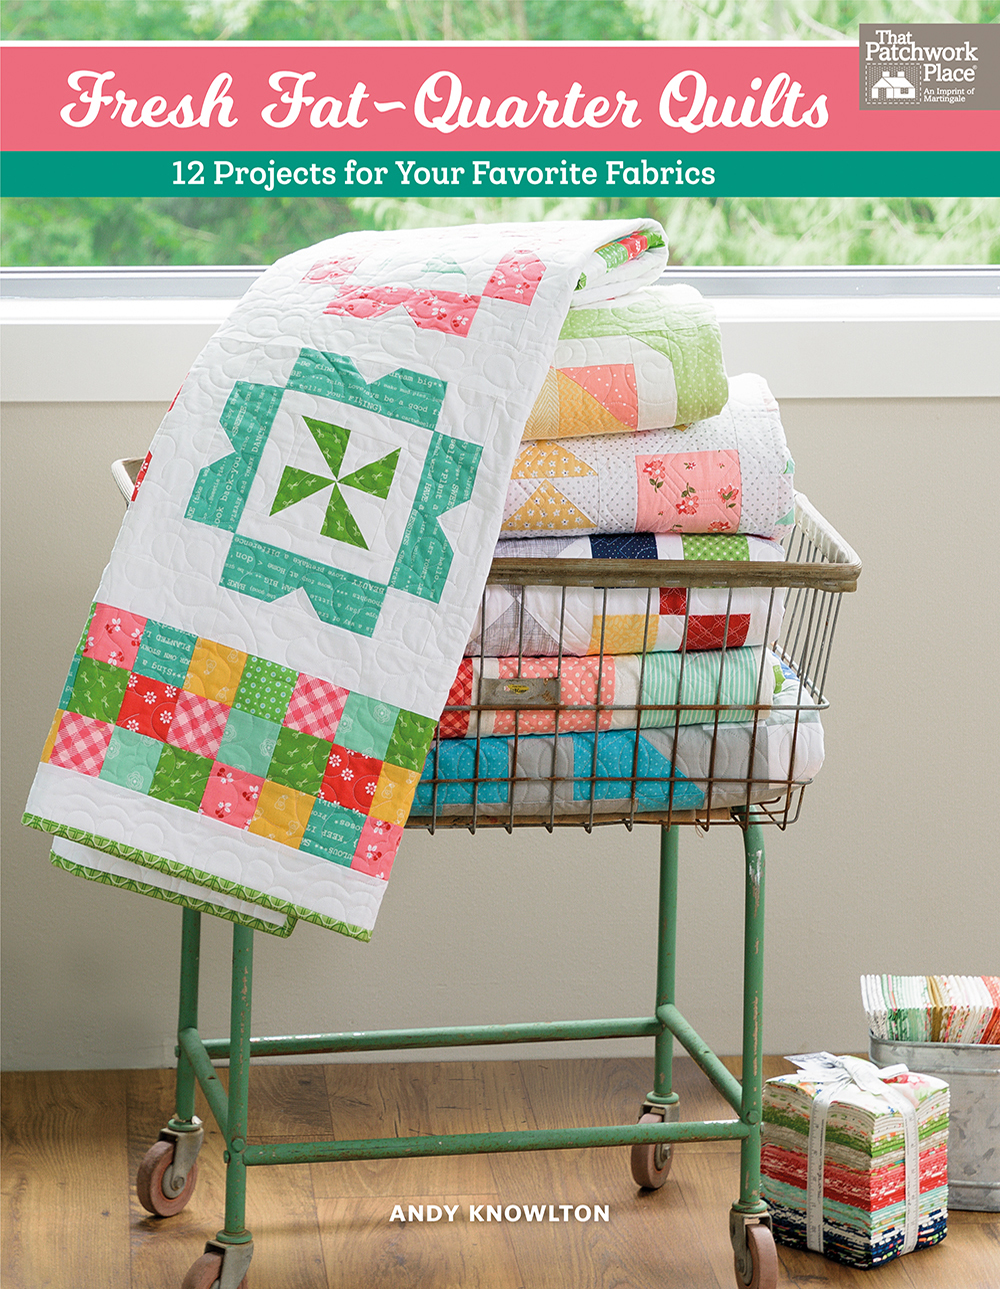 Fresh Fat-Quarter Quilts